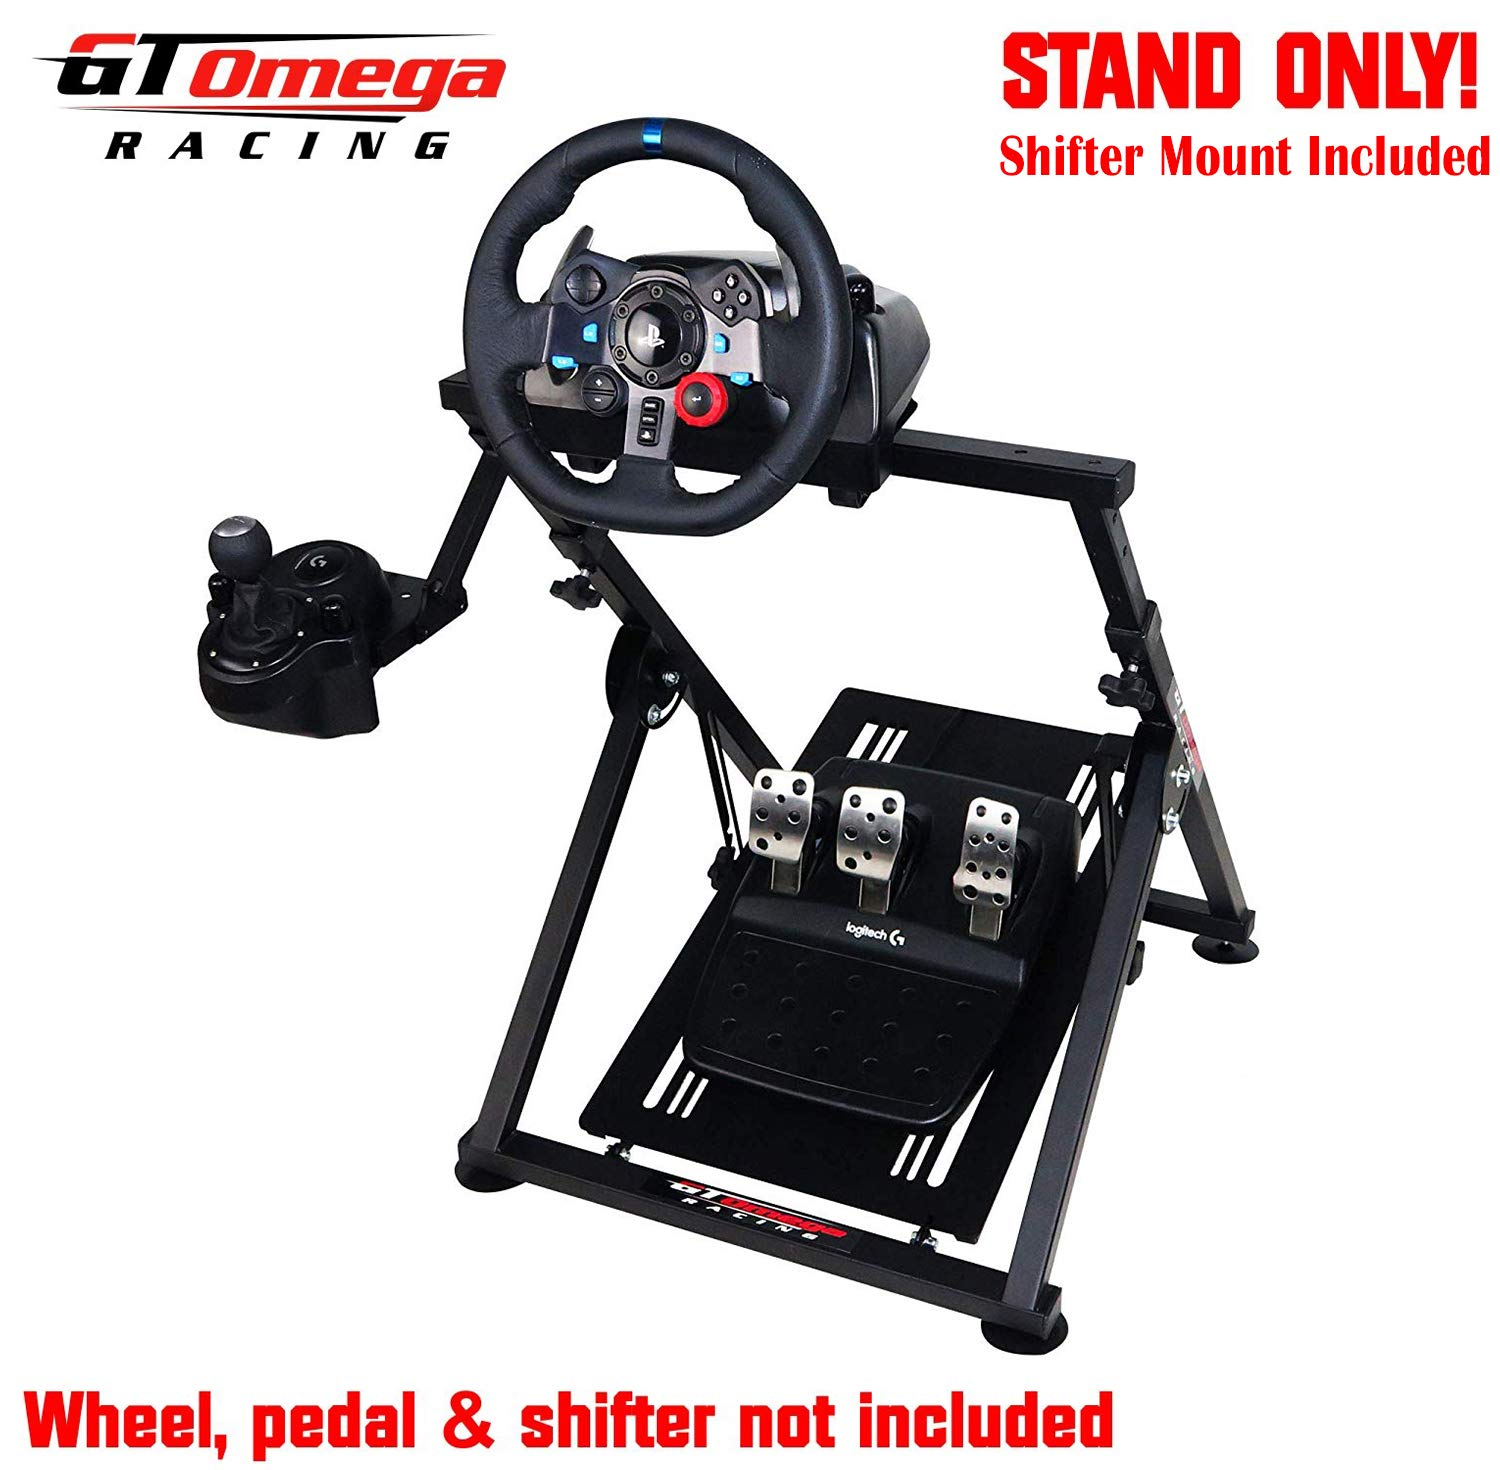 Gt Omega Apex Racing Wheel Stand For Logitech Fanatec Clubsport Thrustmaster Gaming Steering Wheel Pedal Shifter Mount Tx T500 T300 G29 G920 Ps4 Xbox Foldable Tilt Adjustable For Racing Console